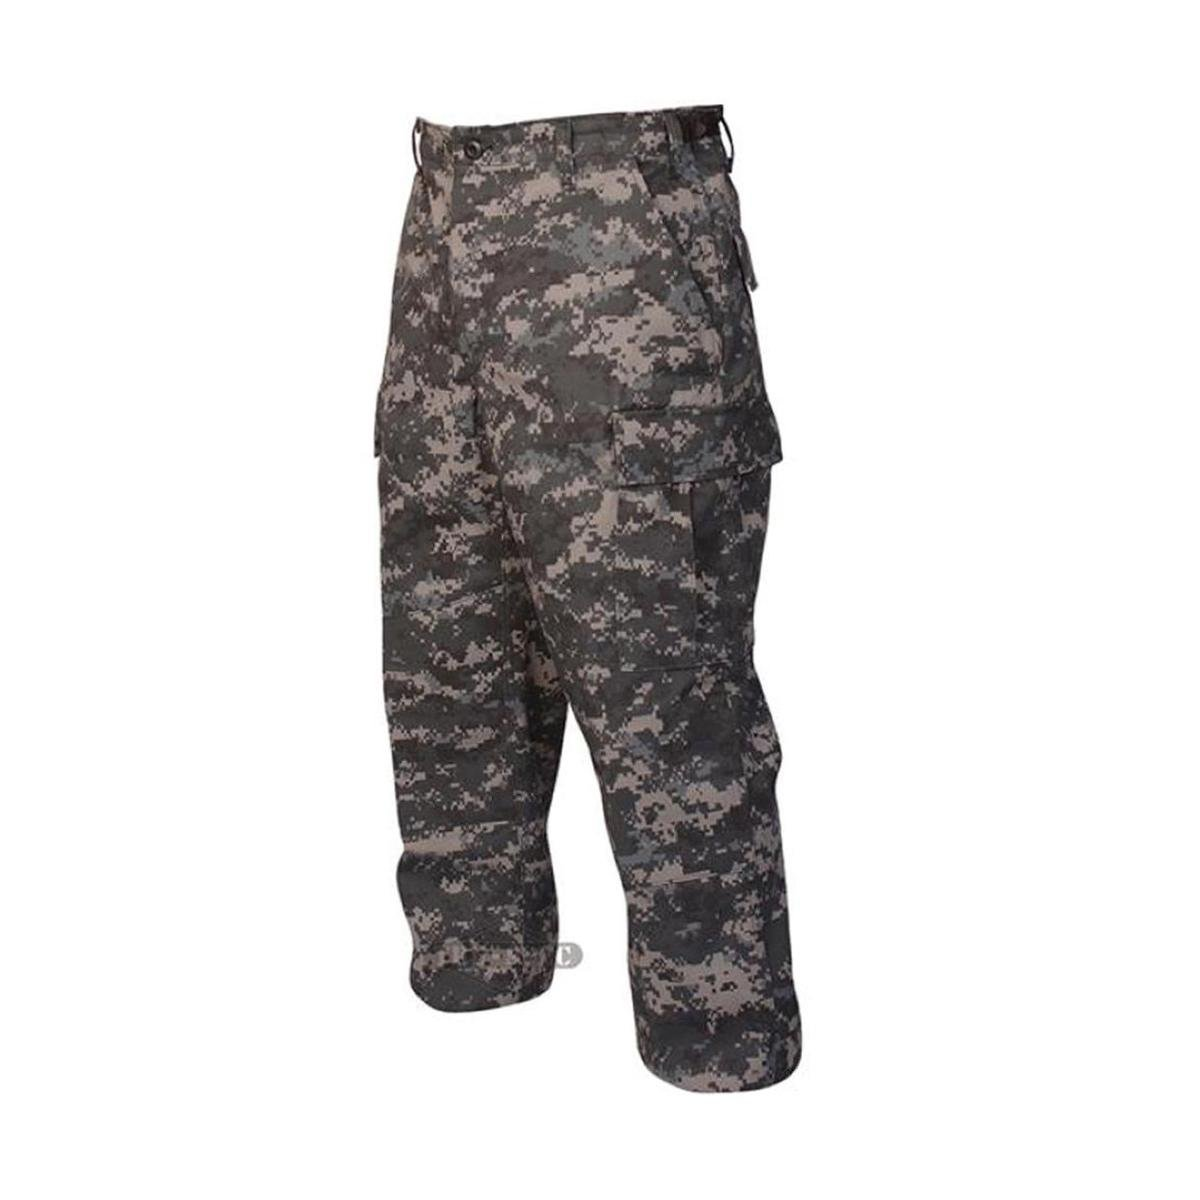 TRU-SPEC Battle Trouser Digital Urban